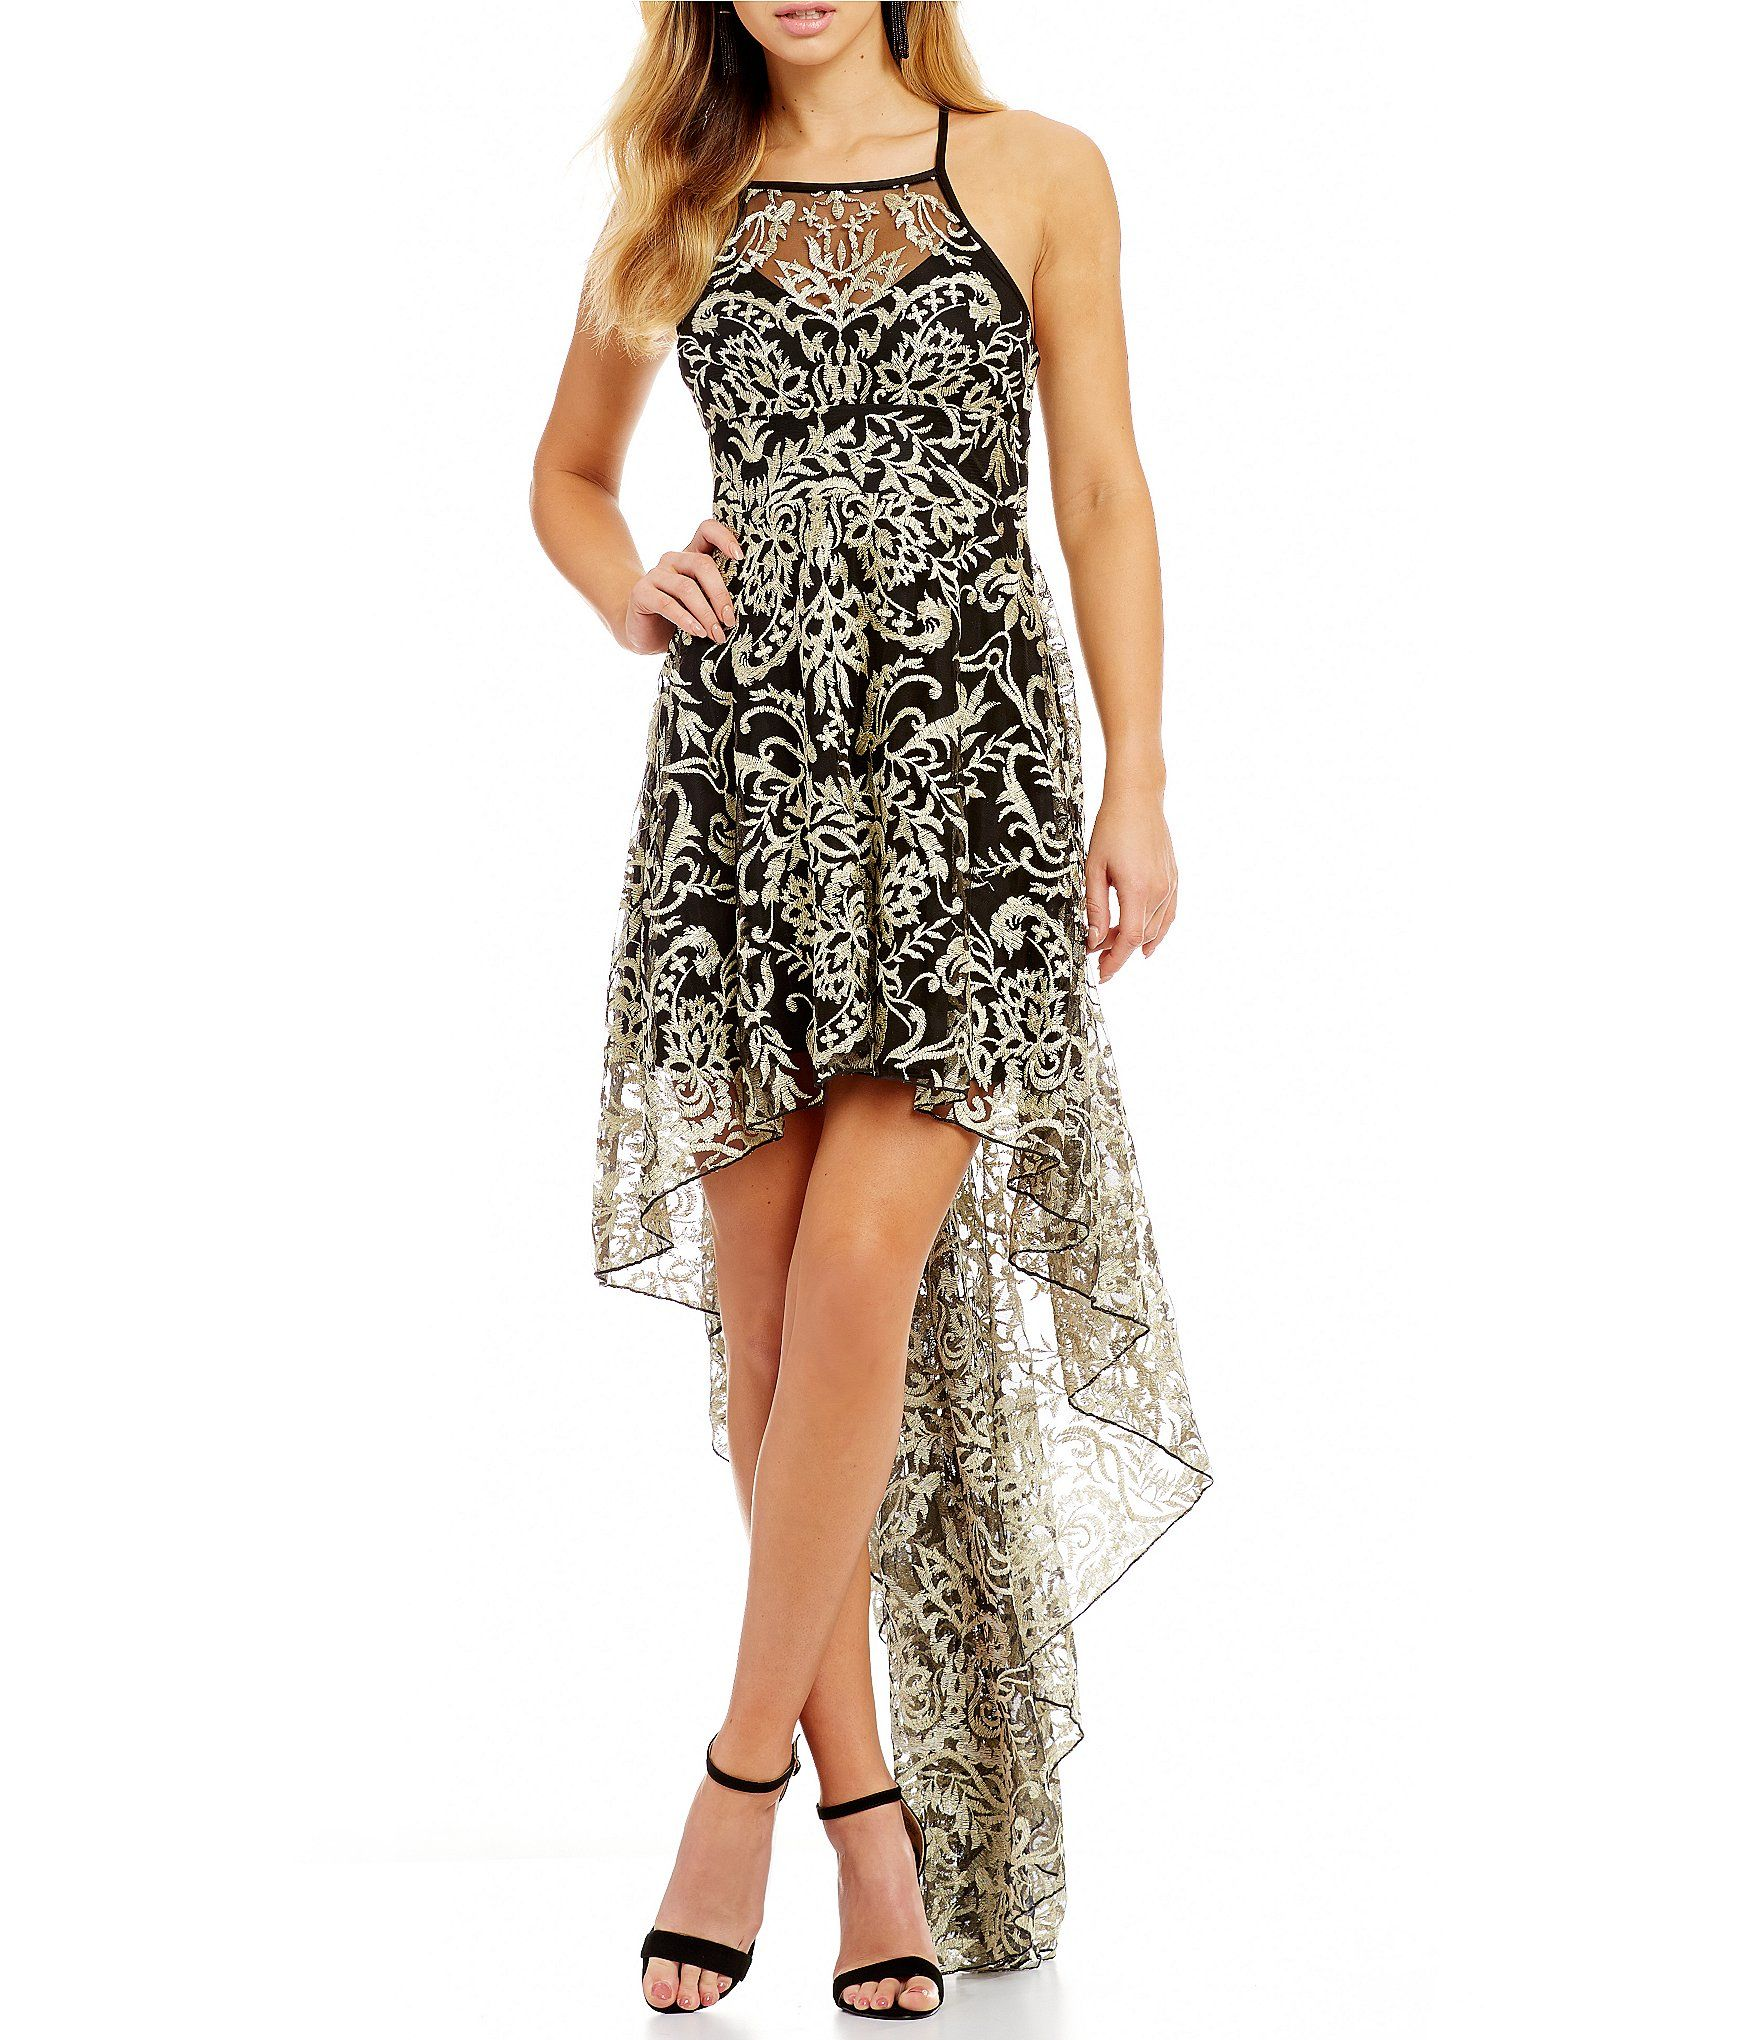 66b3e92a8eef Shop for Xtraordinary Embroidered Metallic Lace High-Low Dress at  Dillards.com. Visit Dillards.com to find clothing, accessories, shoes,  cosmetics & more.